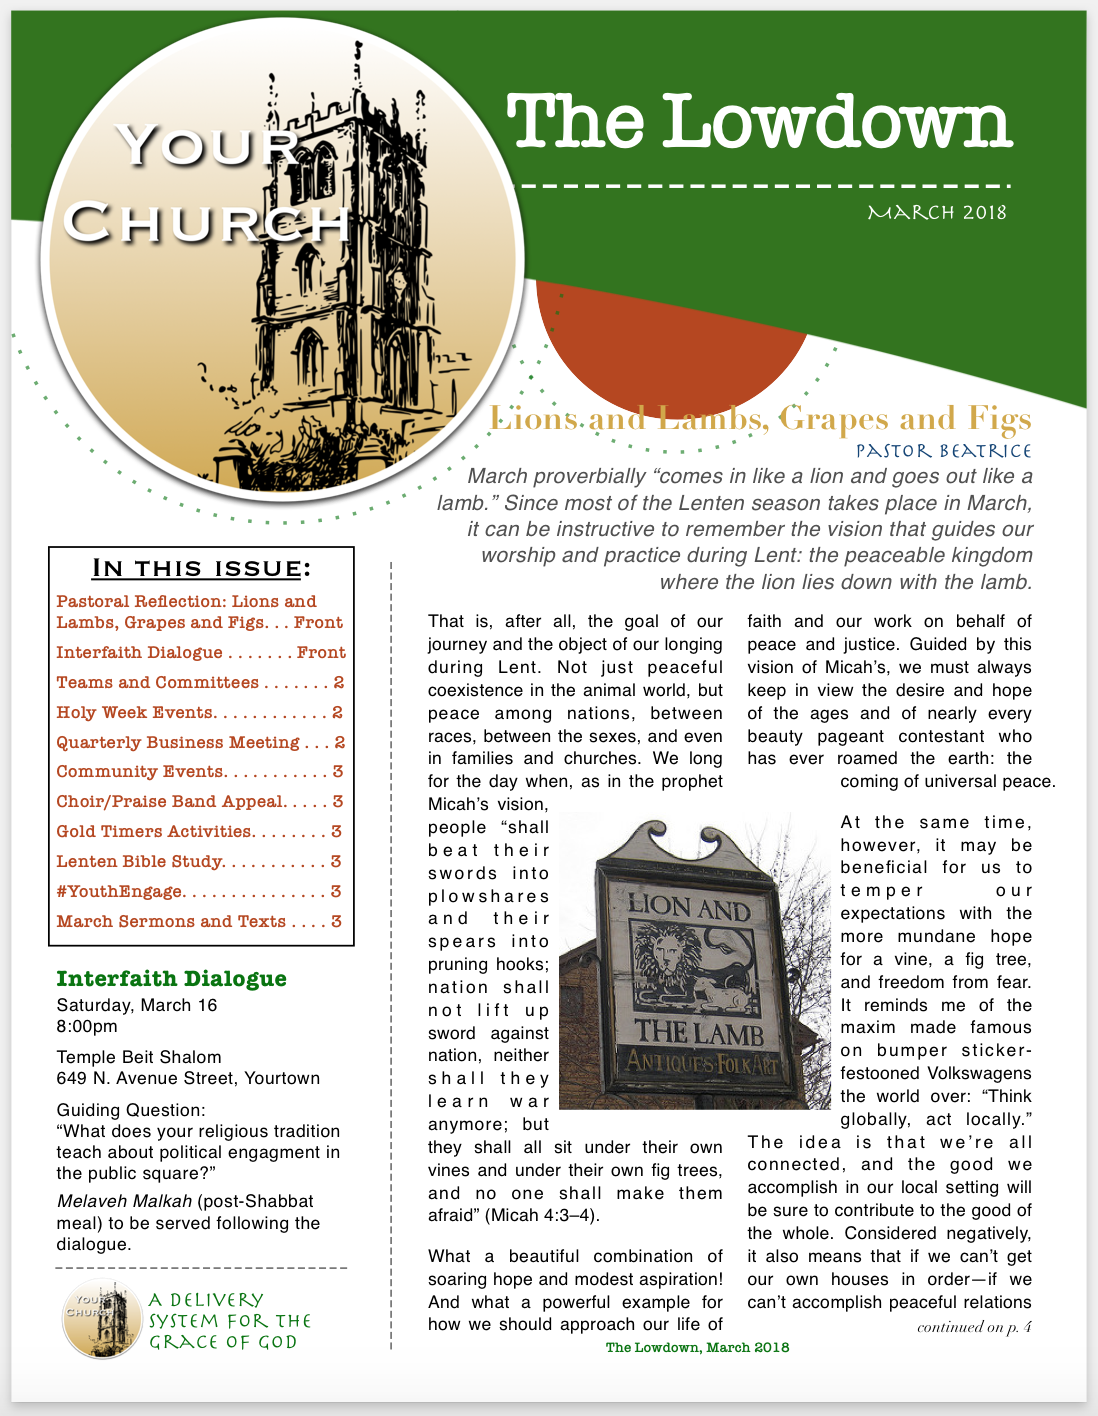 YourChurch Newsletter, March 2018